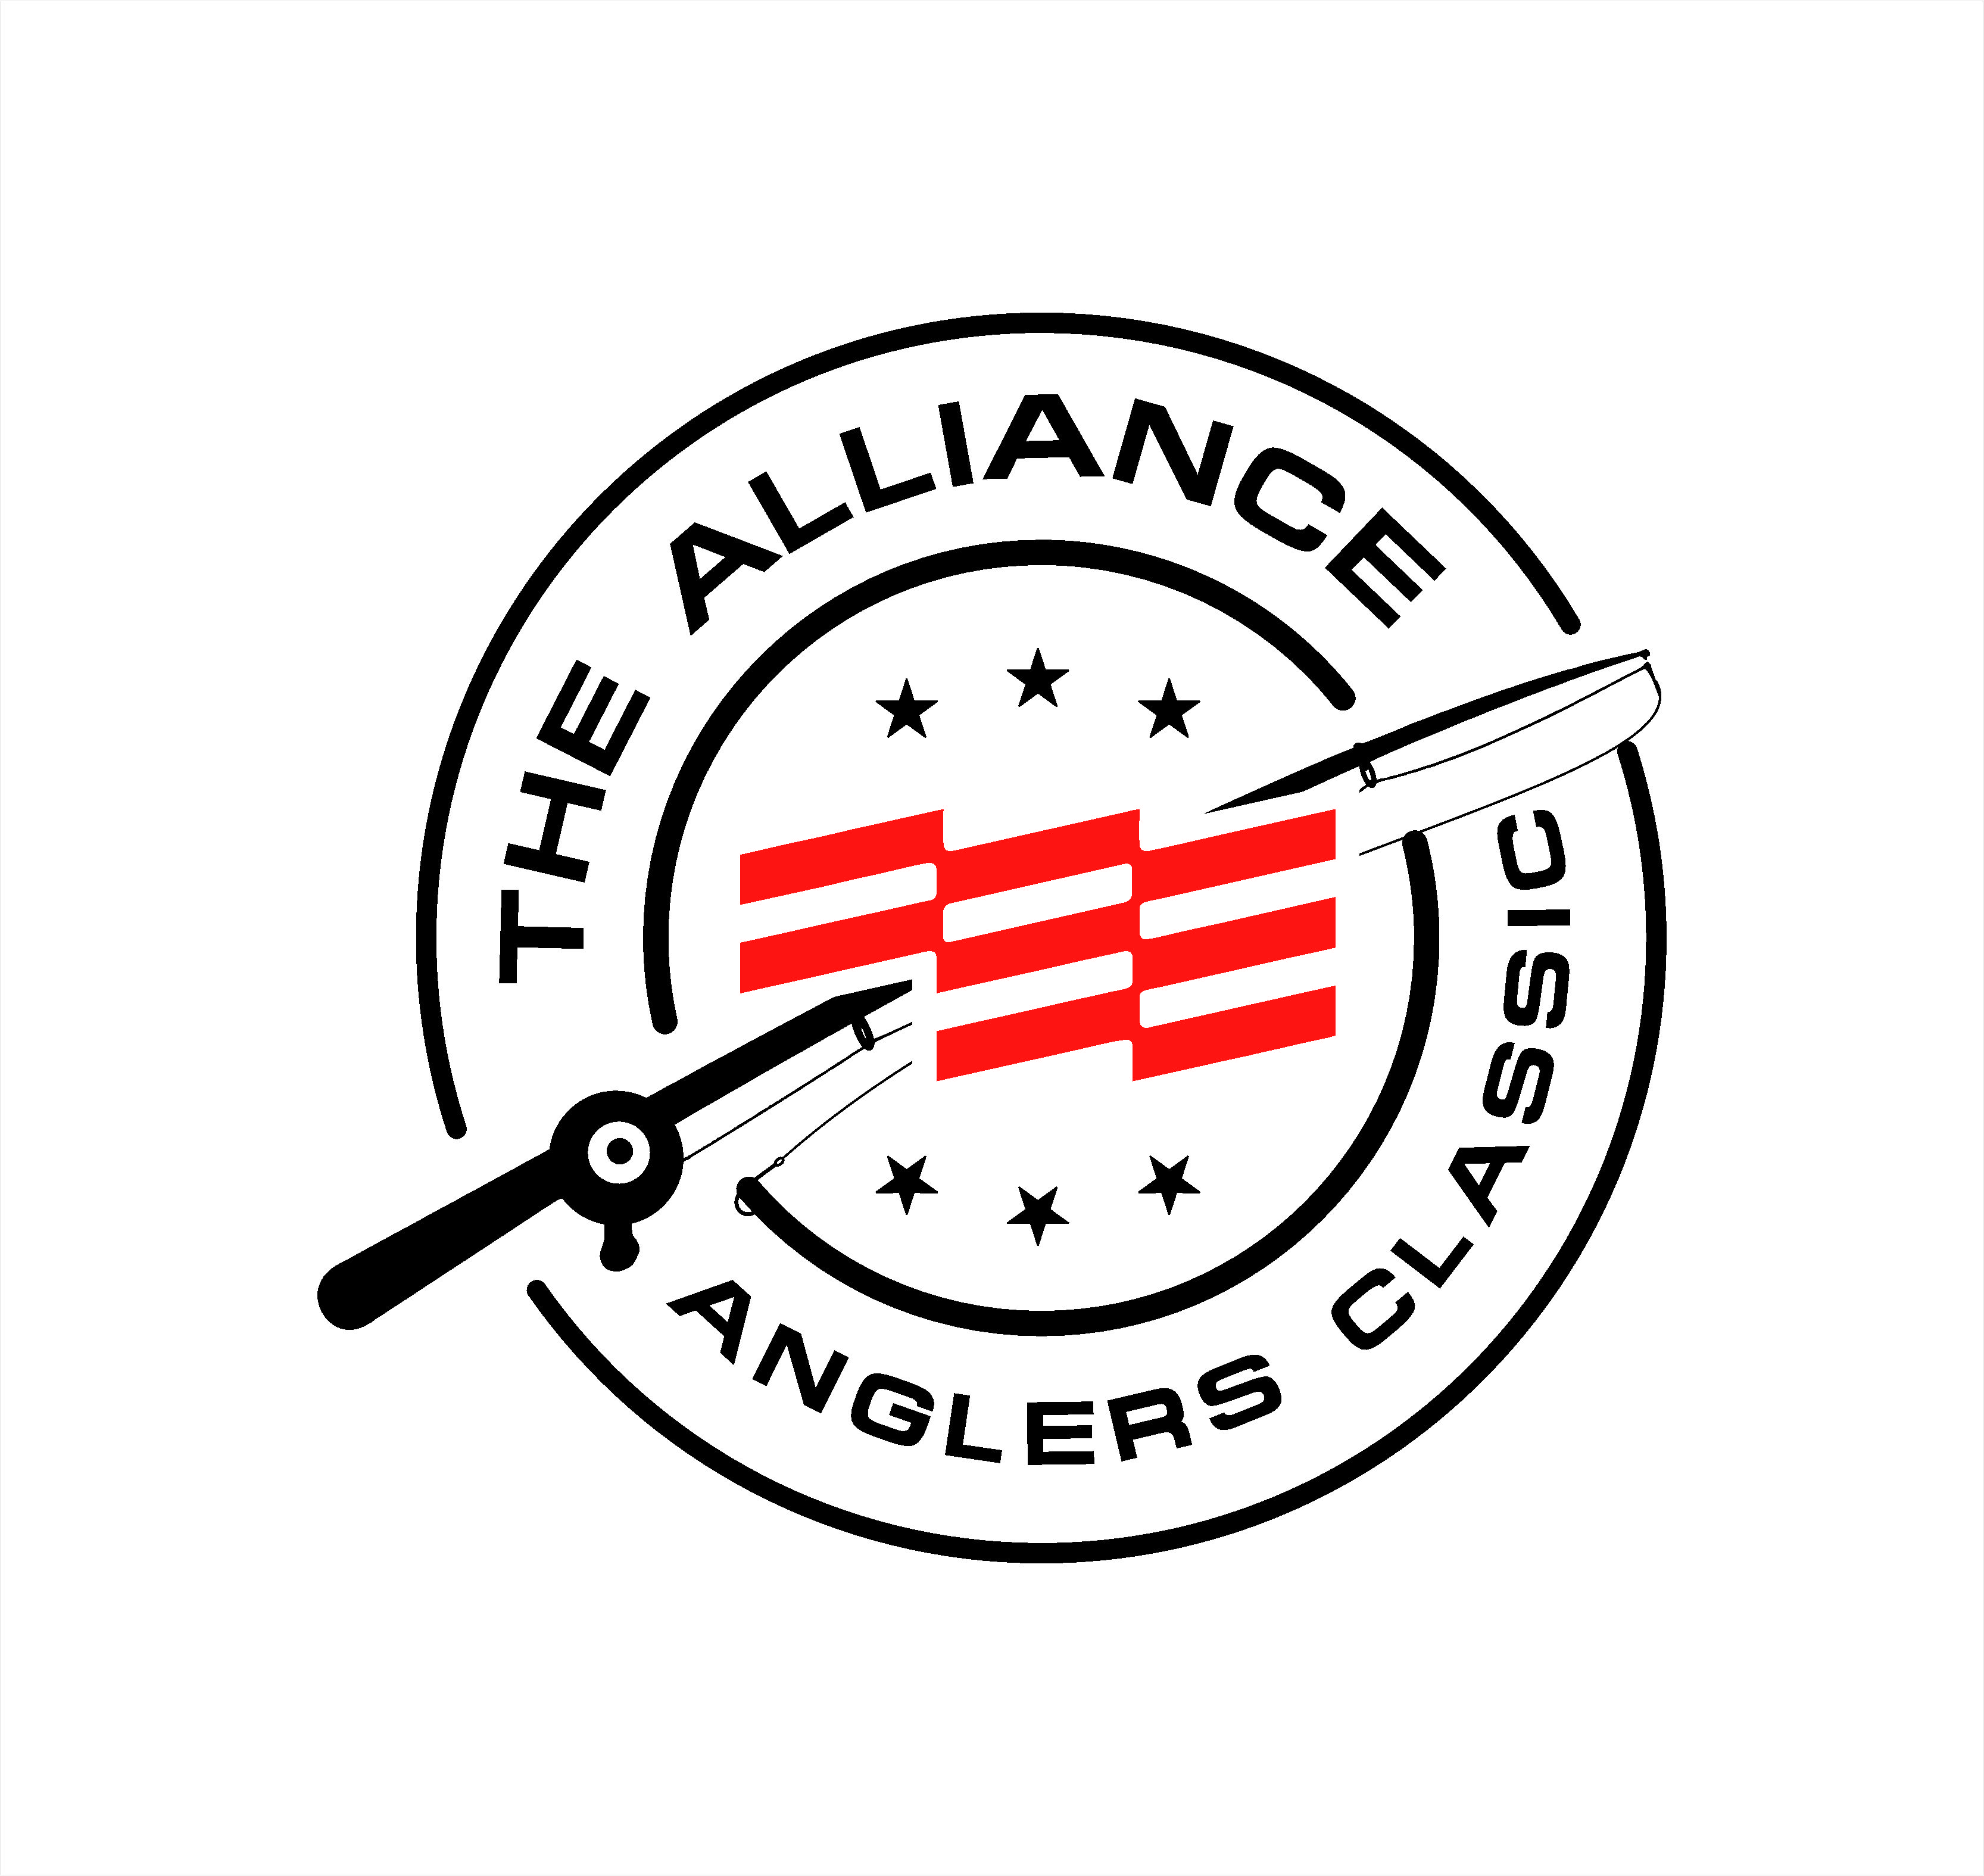 The Alliance Anglers Classic